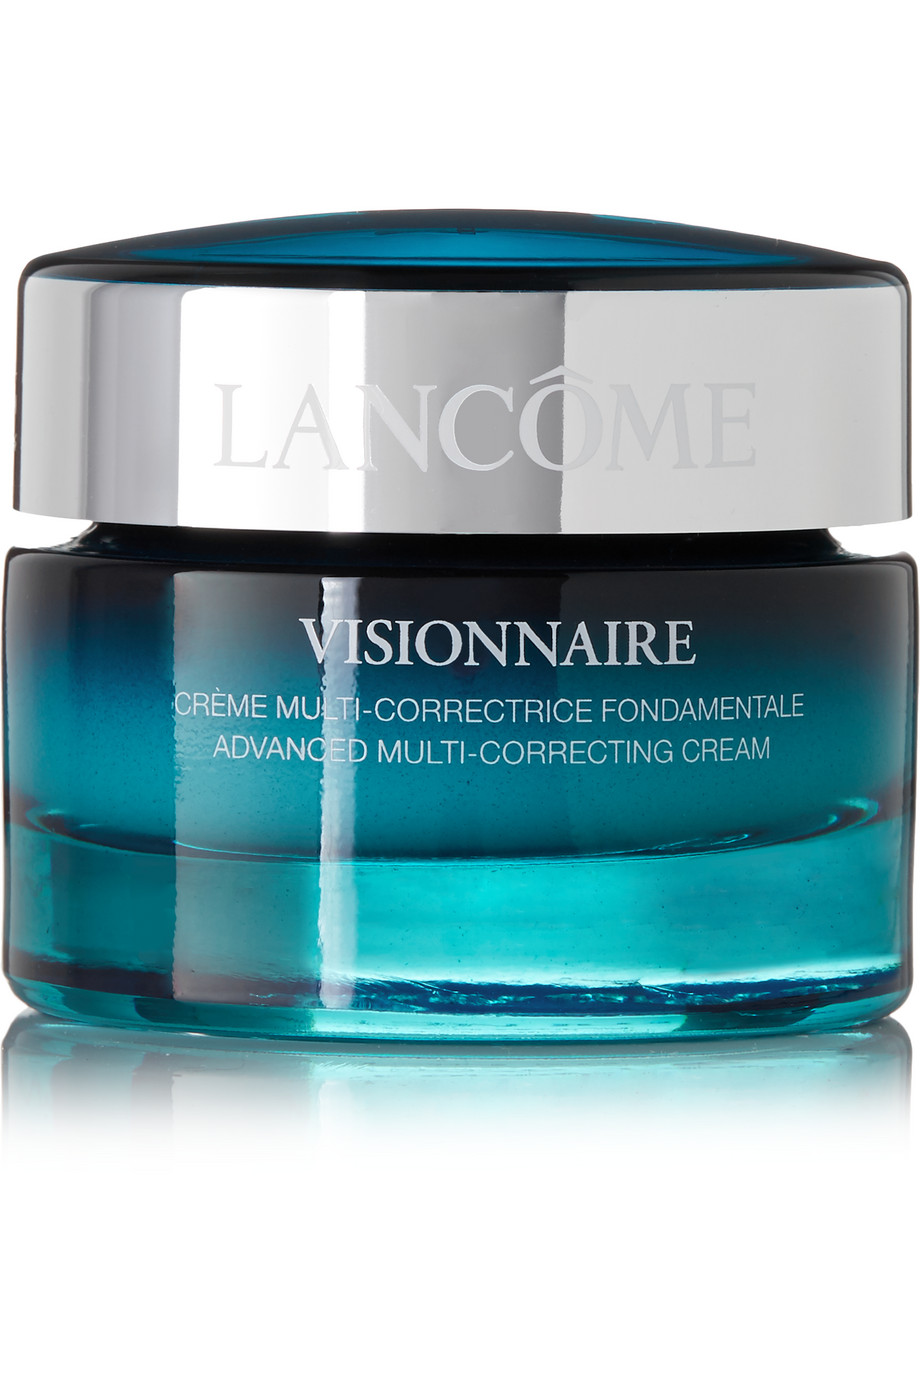 Visionnaire Advanced Multi-Correcting Cream, 50ml, by Lancôme